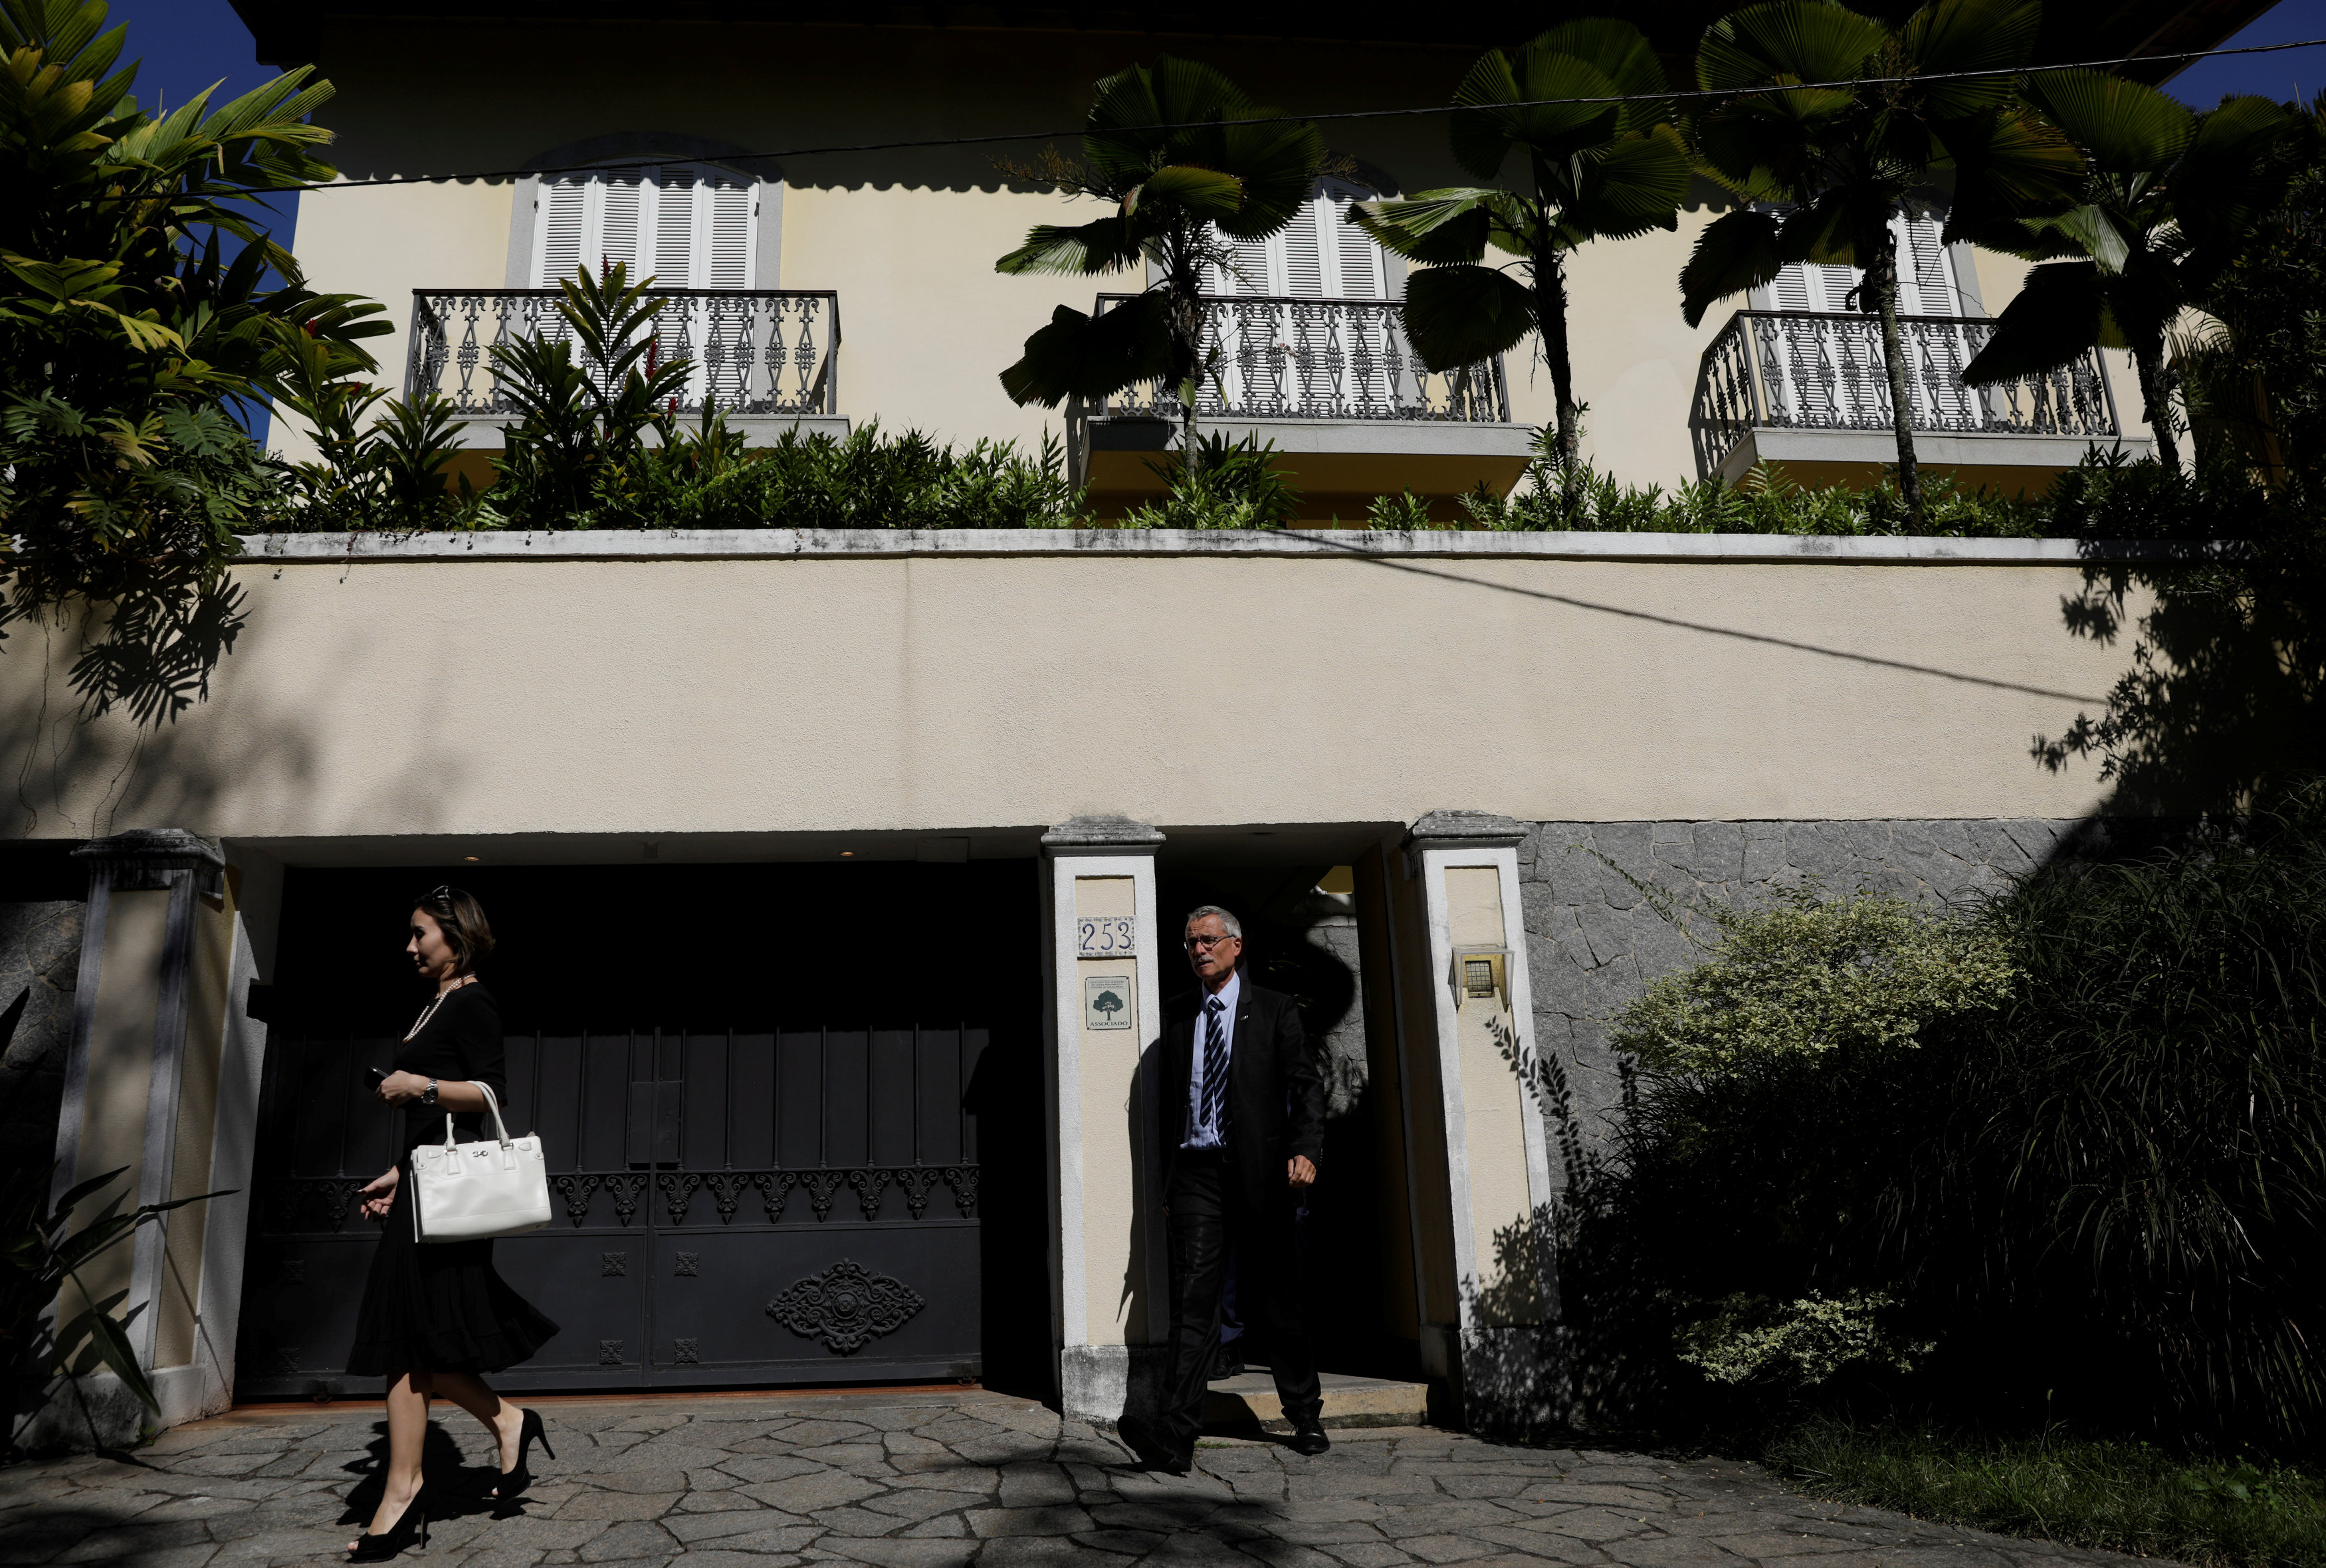 French judge Renaud van Ruymbeke (C) leaves the house of Brazilian Olympic Committee (COB) President Carlos Arthur Nuzman during an search operation in Rio de Janeiro, Brazil on Sept. 5, 2017. (REUTERS/Ricardo Moraes)